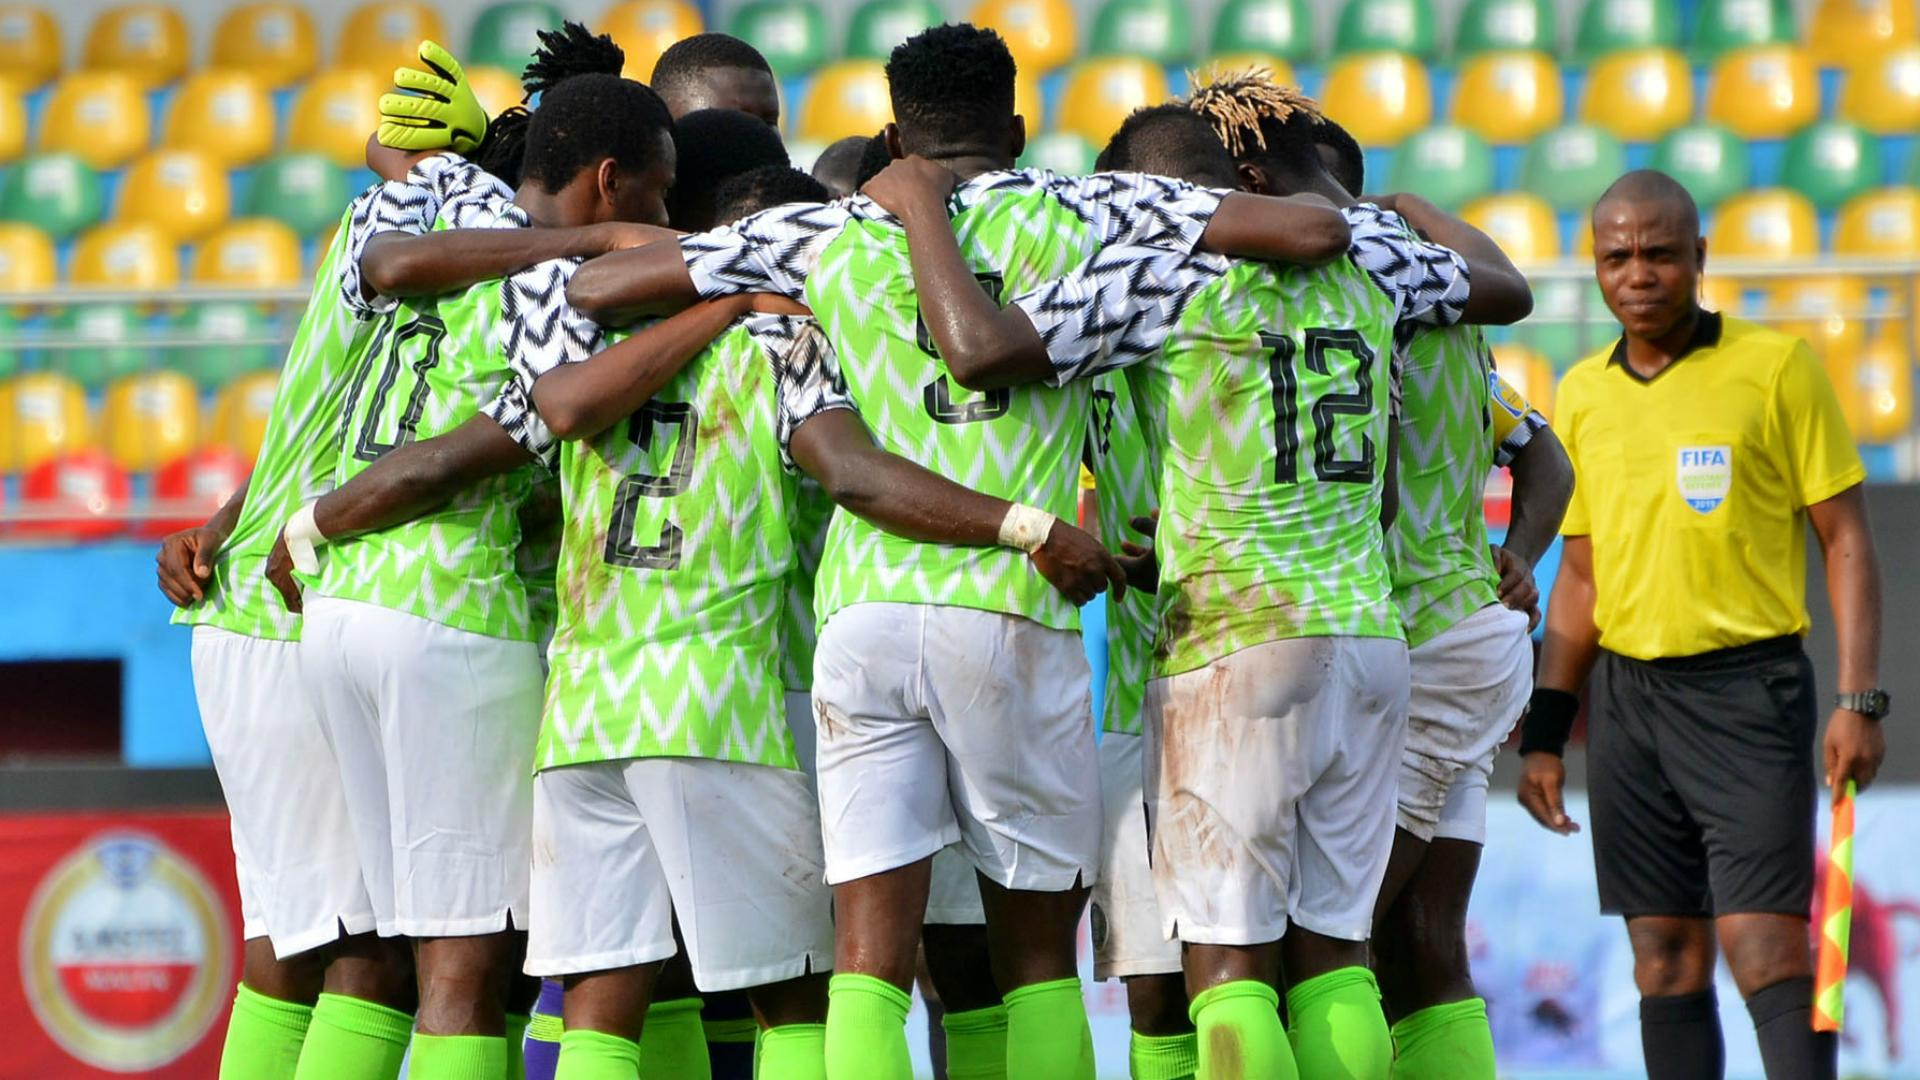 Nigeria 0-1 Cote d'Ivoire: Olympic Eagles begin U23 Afcon title defence on losing note - Yahoo Sports